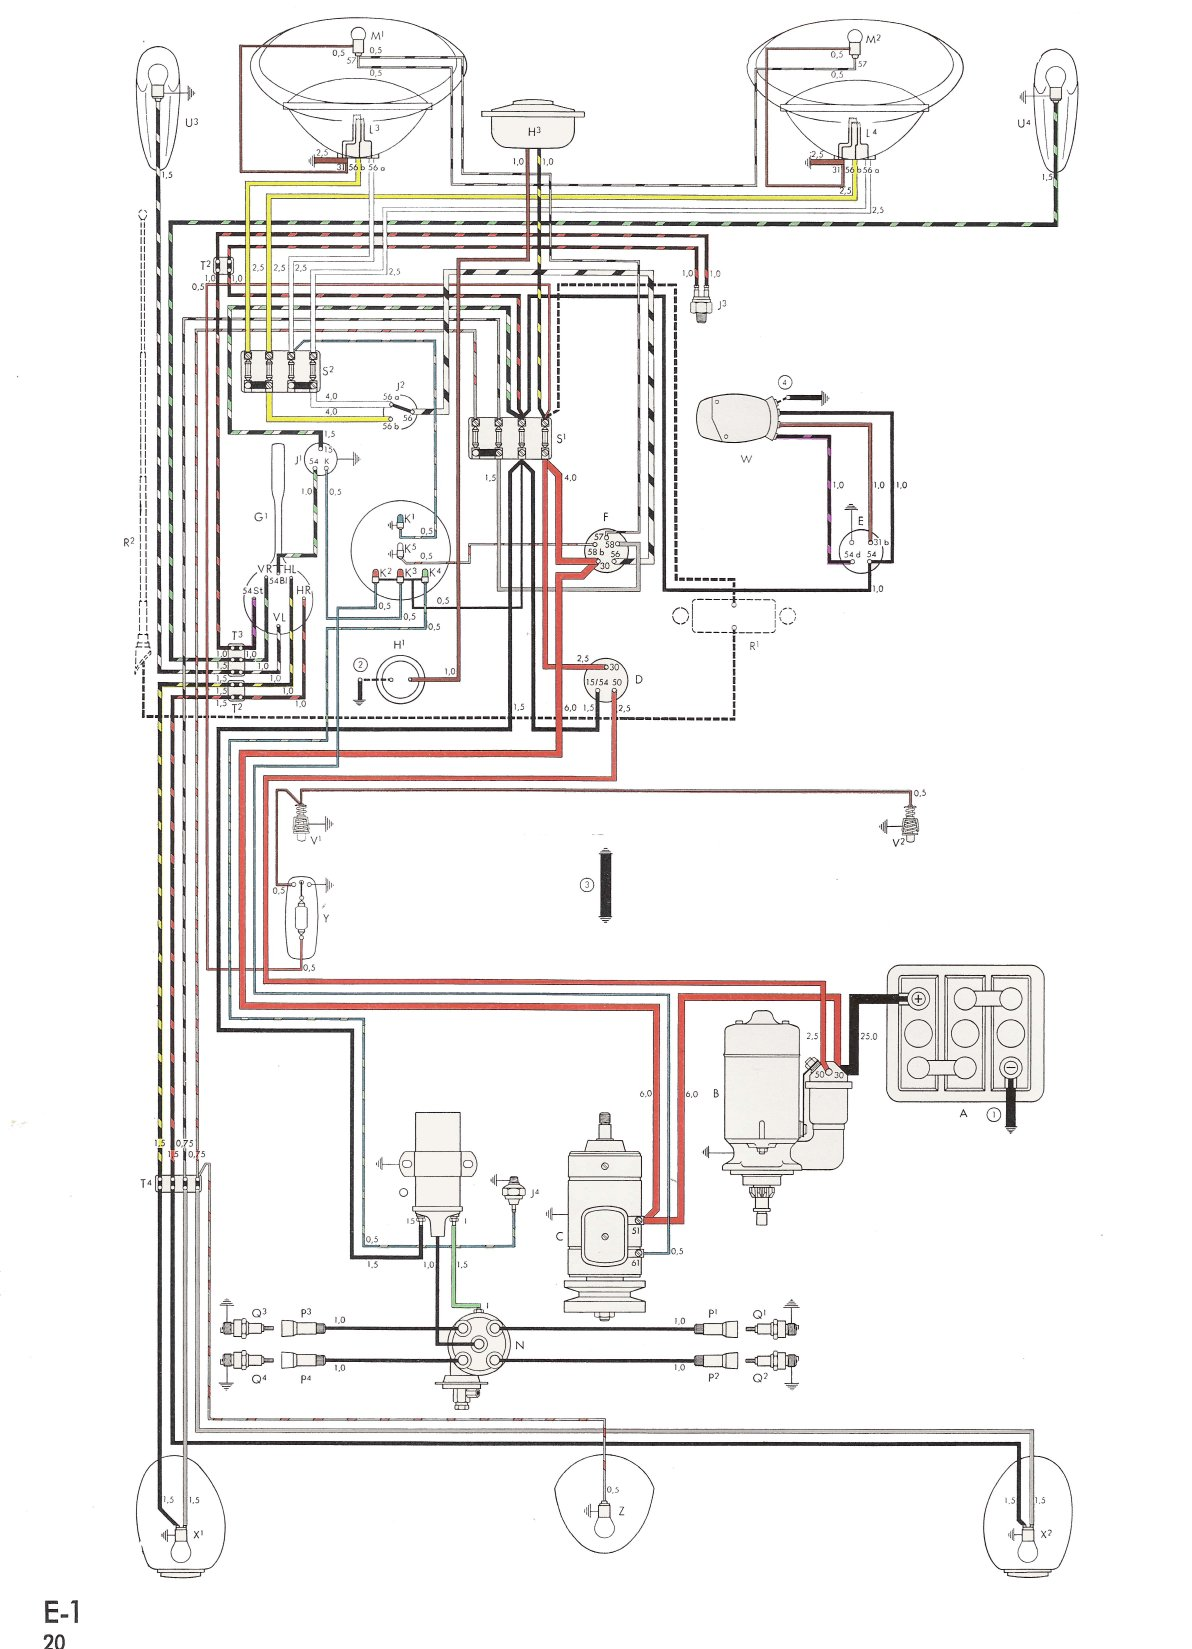 bug60 vw beetle wiring diagram 1974 1973 vw beetle wiring diagram new beetle wiring diagram at bayanpartner.co